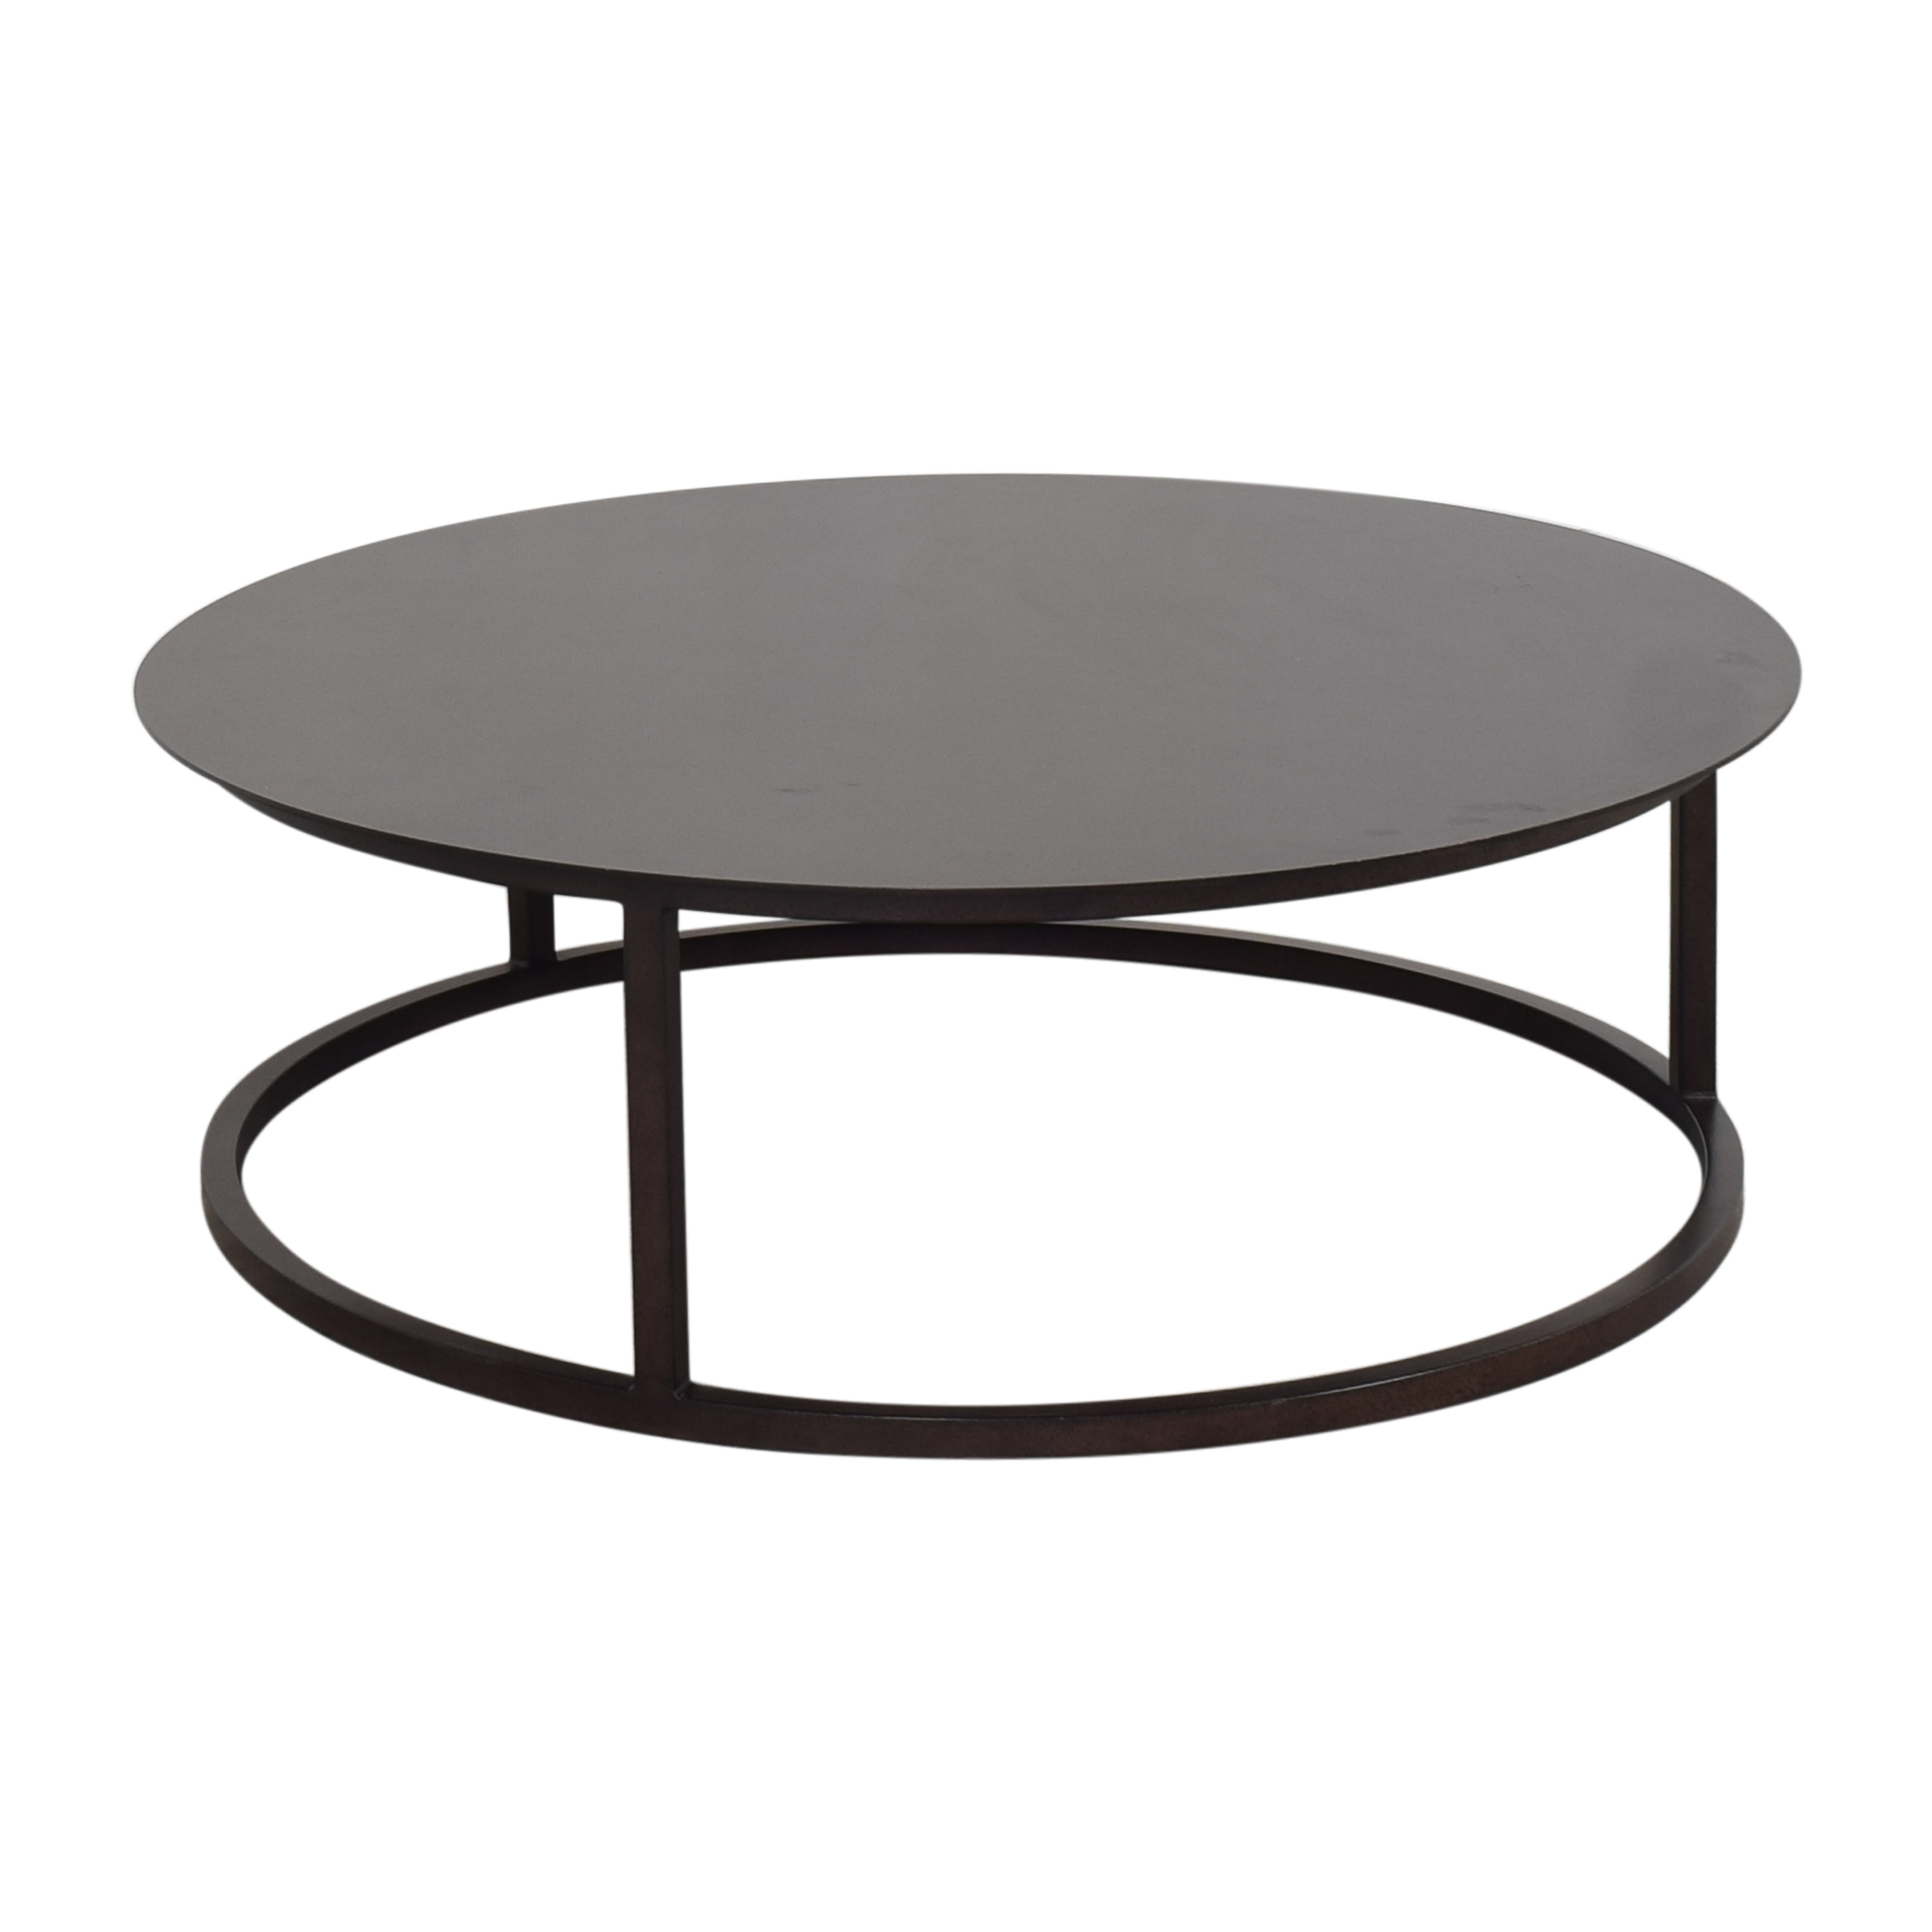 Restoration Hardware Round Mercer Coffee Table / Coffee Tables